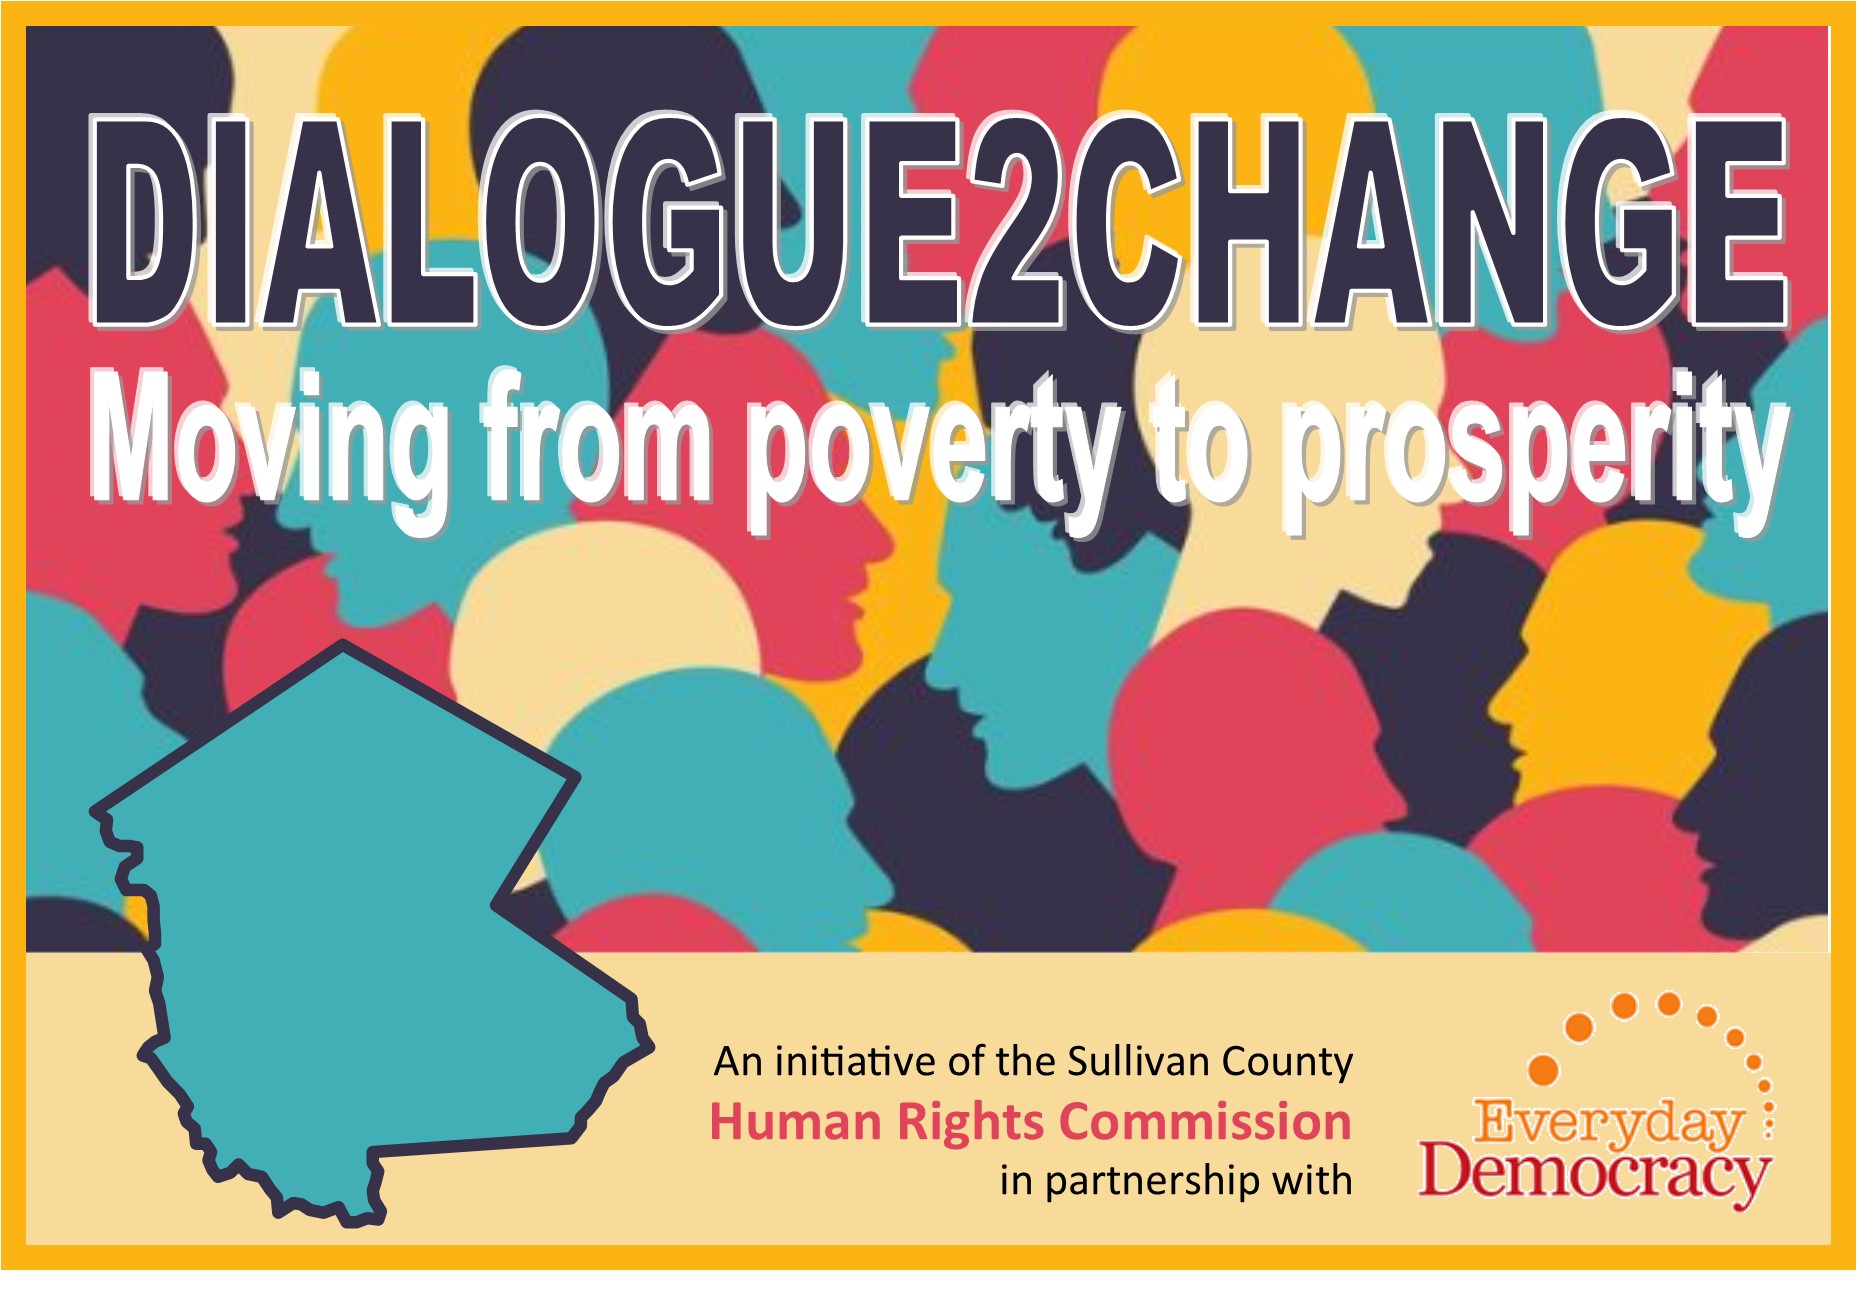 Dialogue 2 Change - Moving from poverty to prosperity